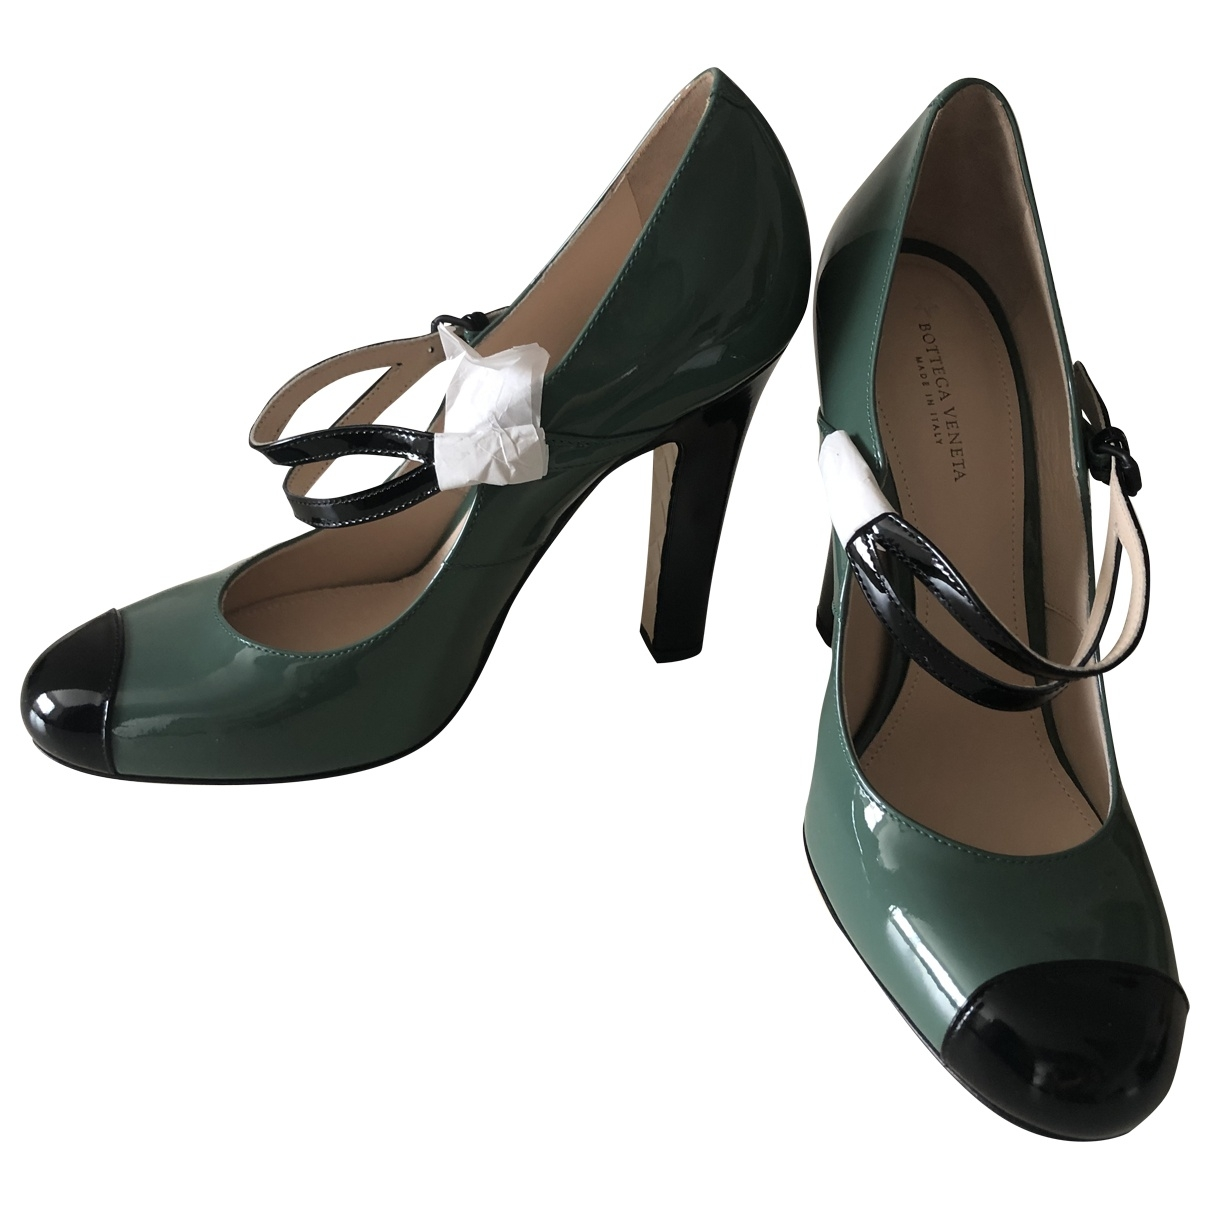 Bottega Veneta \N Green Patent leather Heels for Women 38.5 EU